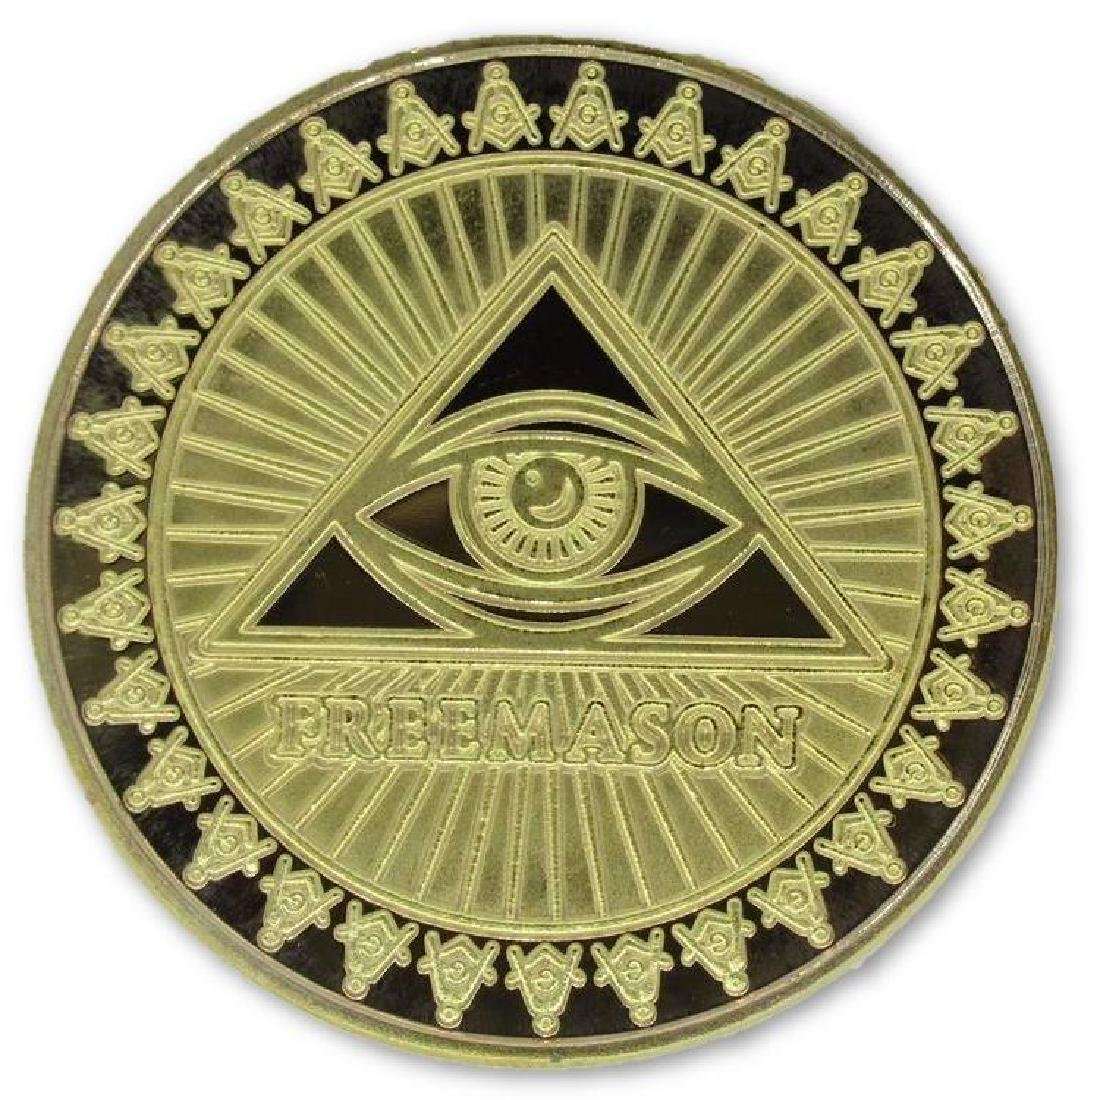 Freemason 24K Gold Clad Collectible Token Coin